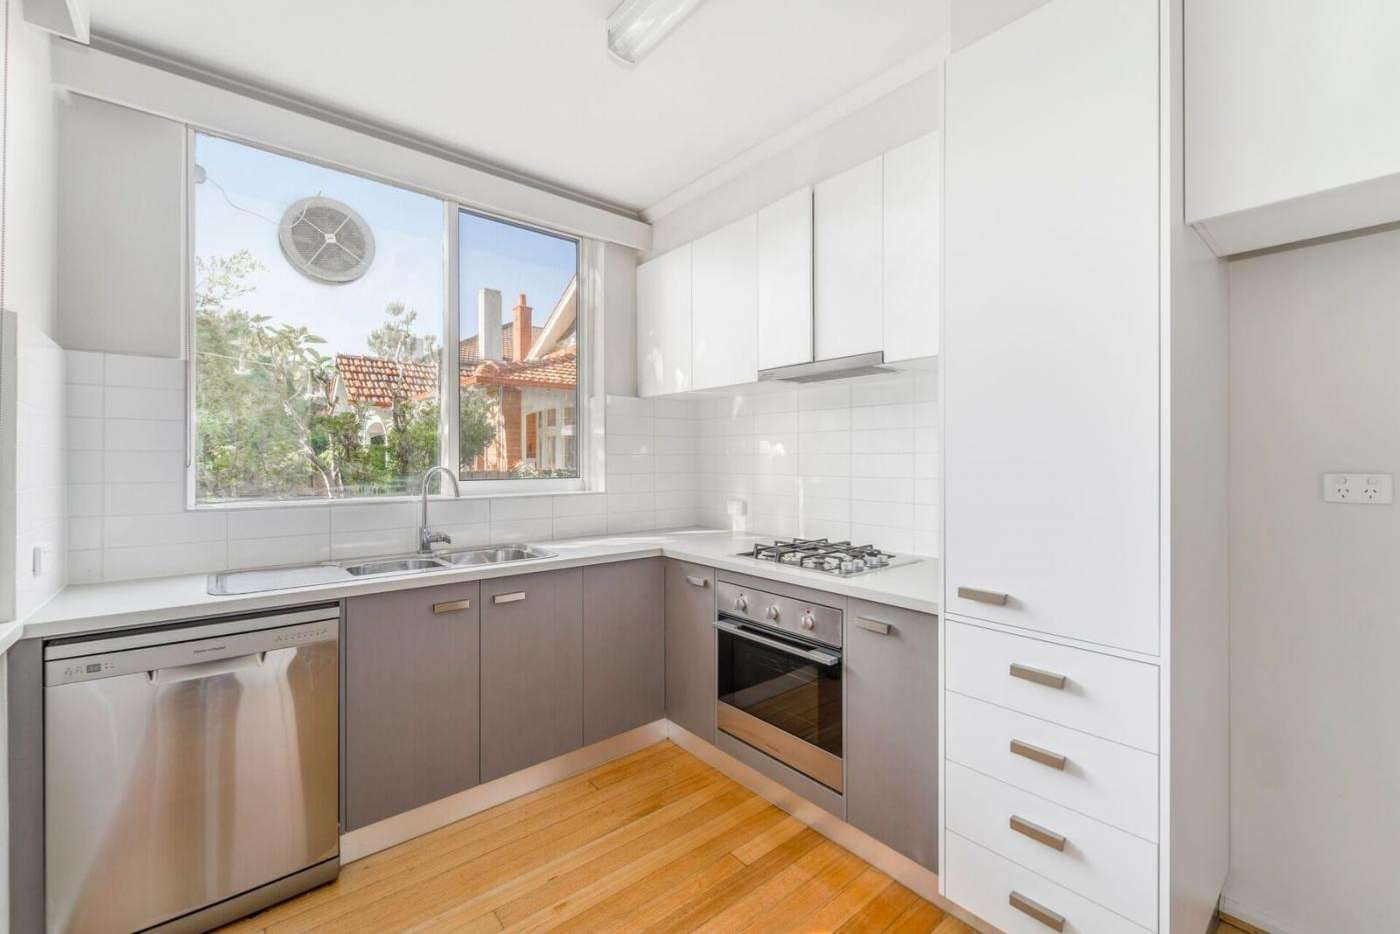 Main view of Homely apartment listing, 2/22 Mitford Street, St Kilda VIC 3182